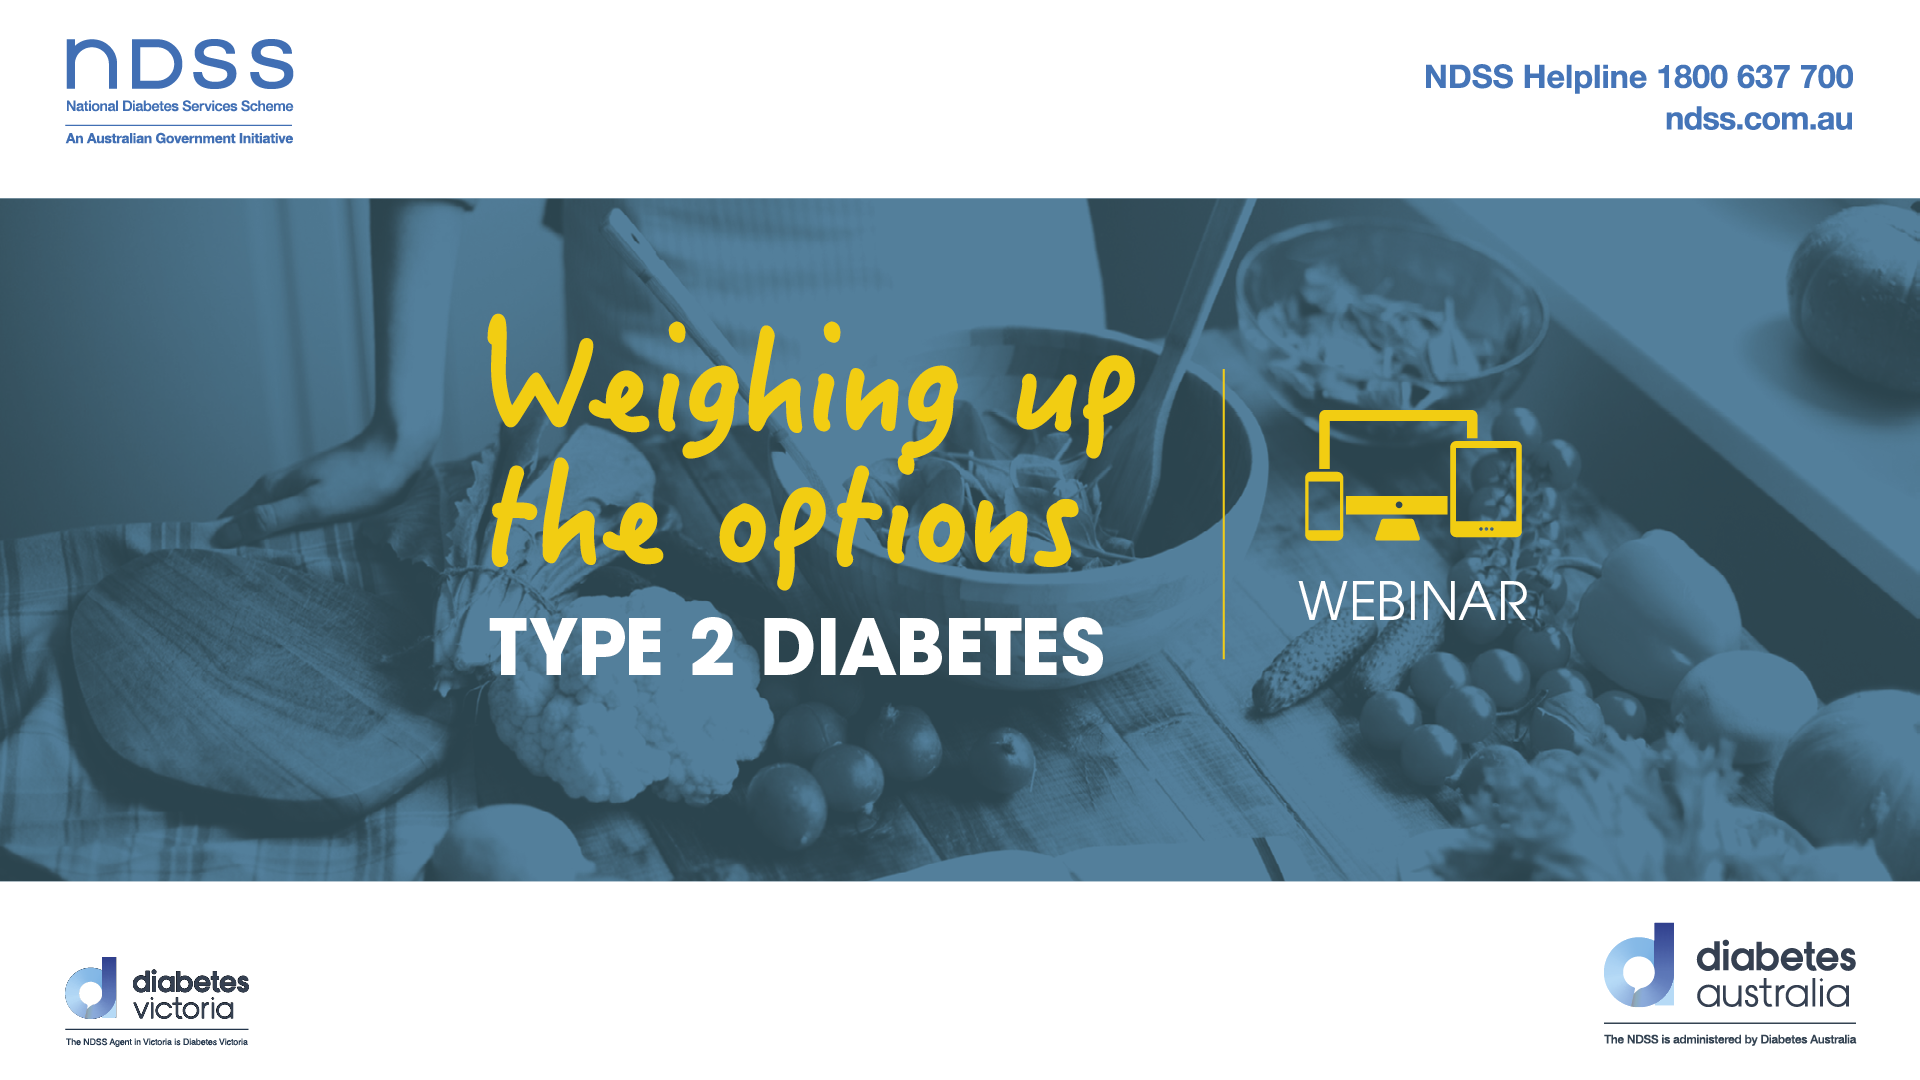 Weighing up the options webinar